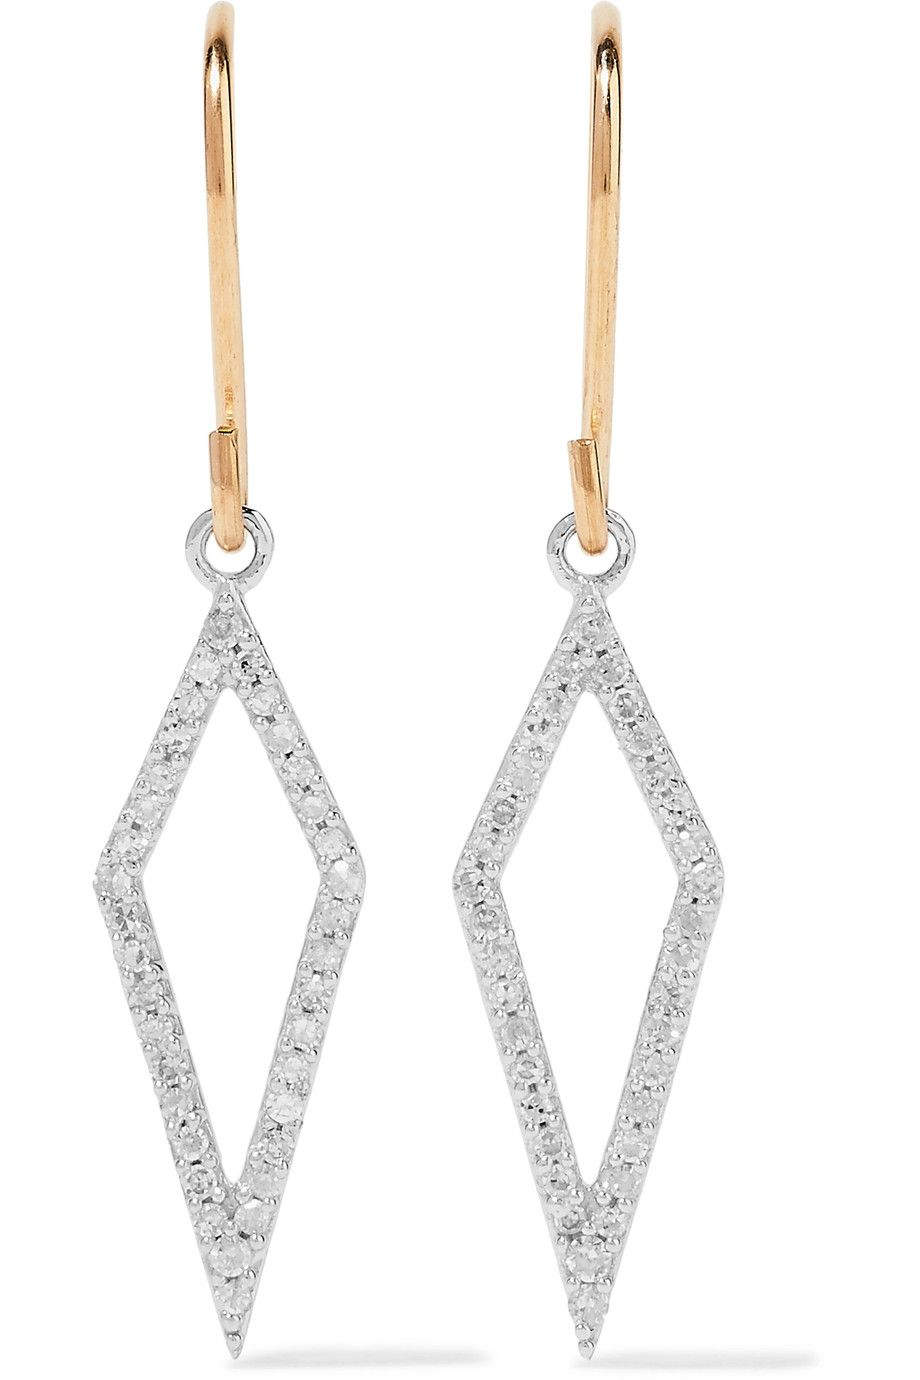 Shop on-sale Adina Reyter 14-karat gold, sterling silver and  diamond earrings. Browse other discount designer Jewelry & more on The Most Fashionable Fashion Outlet, THE OUTNET.COM